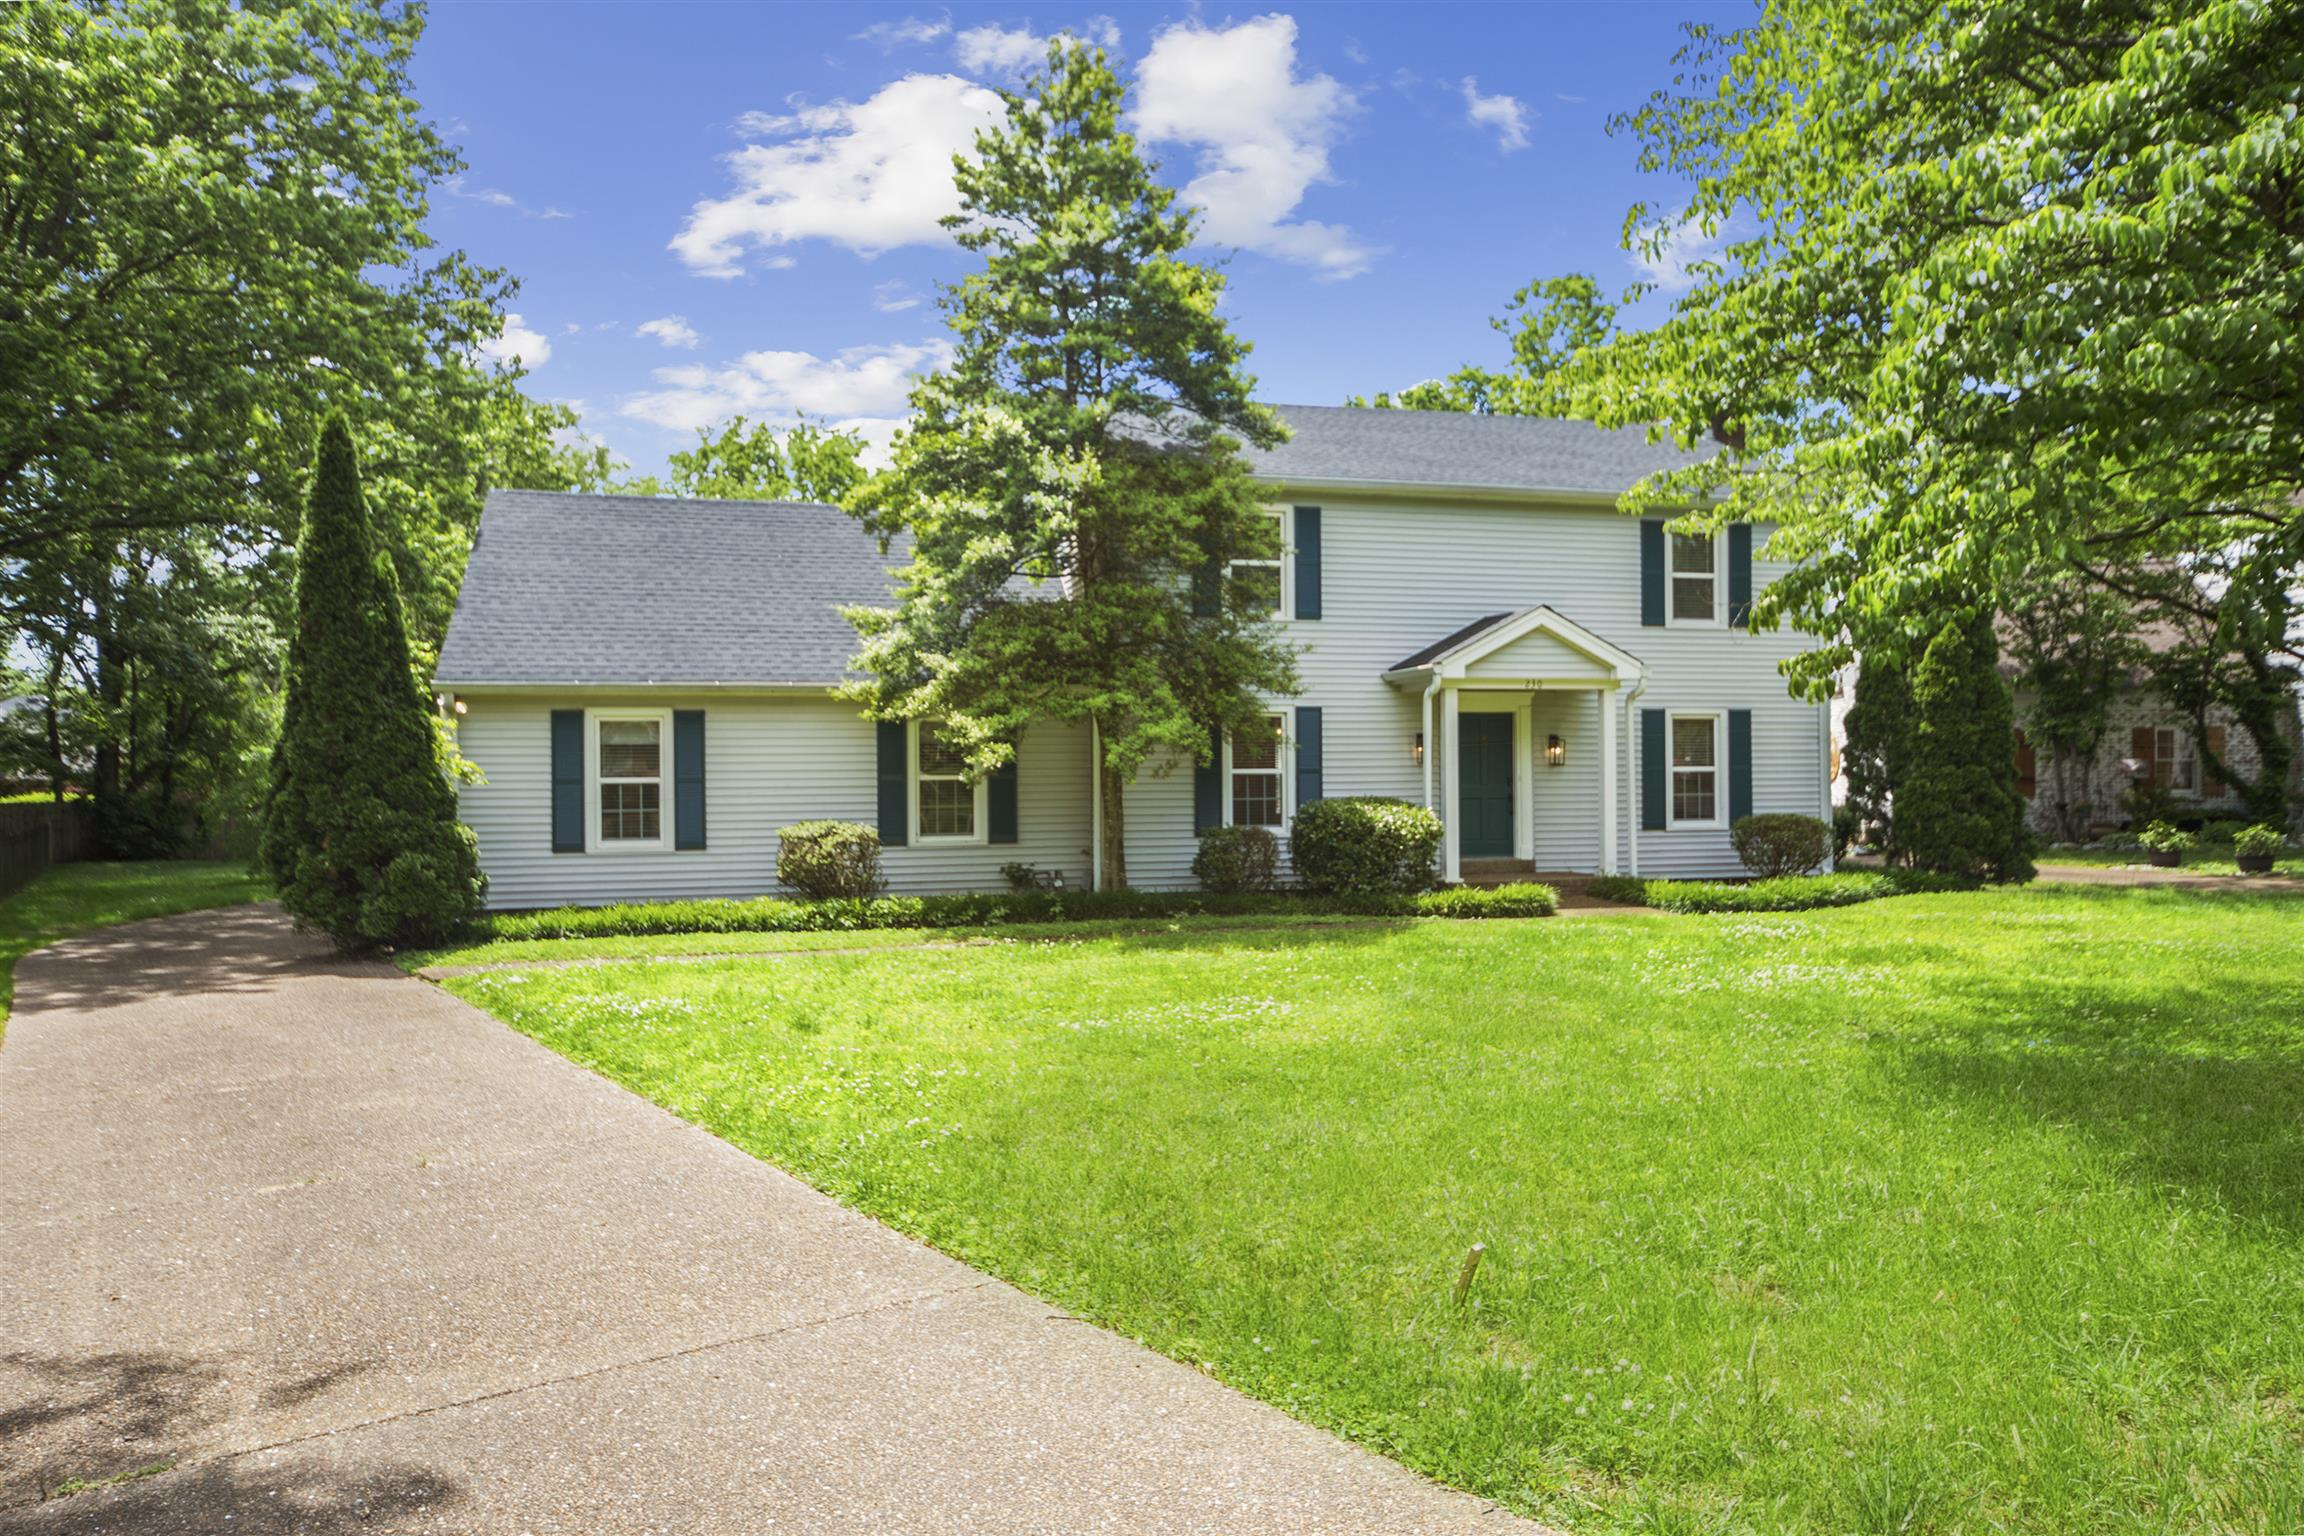 230 Gloucester St, Franklin, TN 37064 - Franklin, TN real estate listing